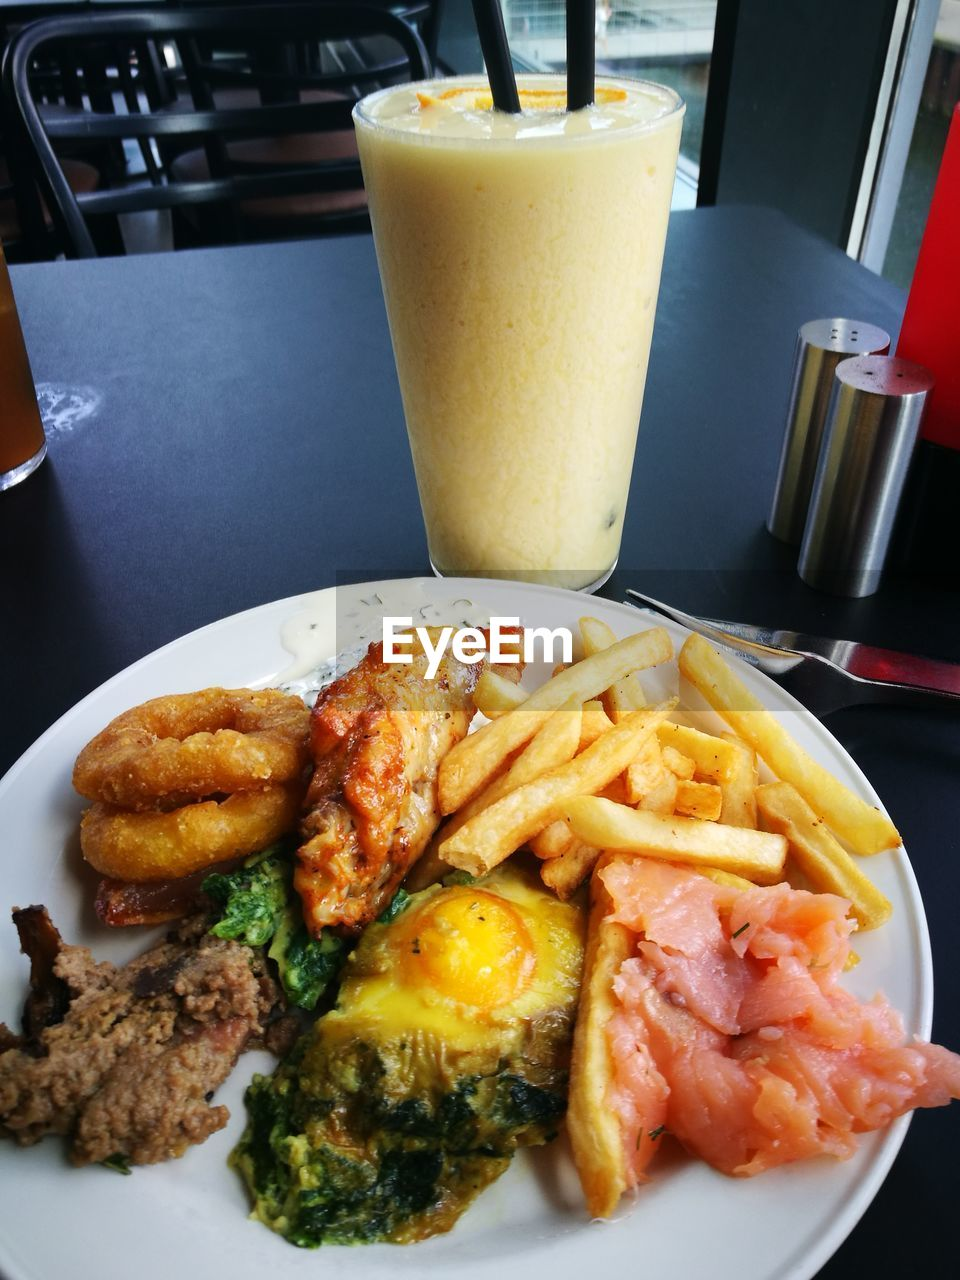 food and drink, drink, plate, food, table, drinking glass, french fries, prepared potato, ready-to-eat, indoors, serving size, refreshment, freshness, no people, meat, meal, close-up, healthy eating, fast food, day